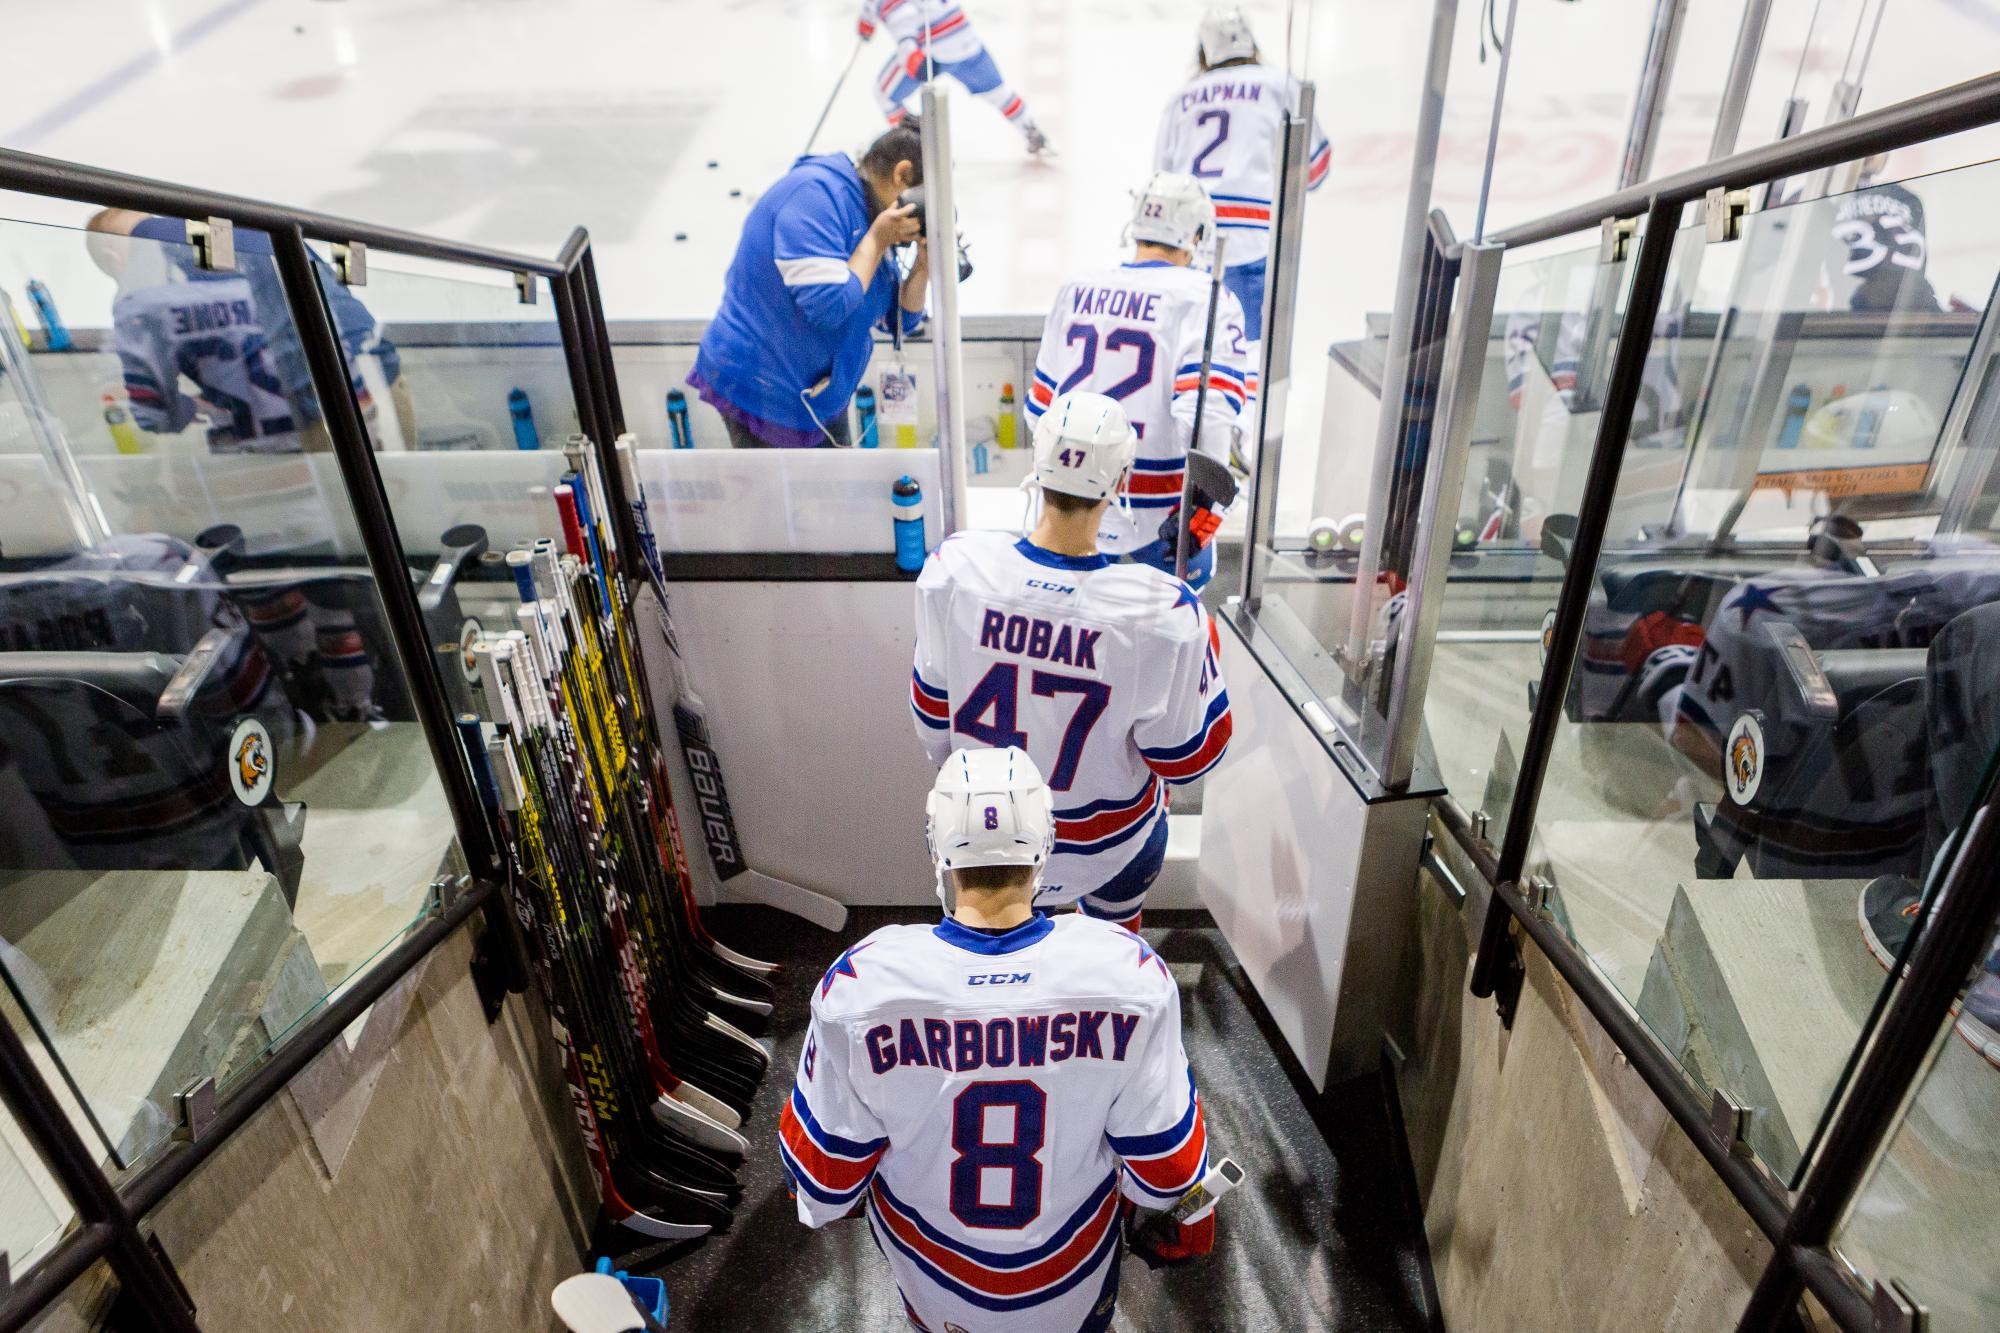 Matt Garbowsky enters the ice with the Rochester Americans at the Gene Polisseni Center on Oct. 1, 2015. Photograph by Rob Rauchwerger.